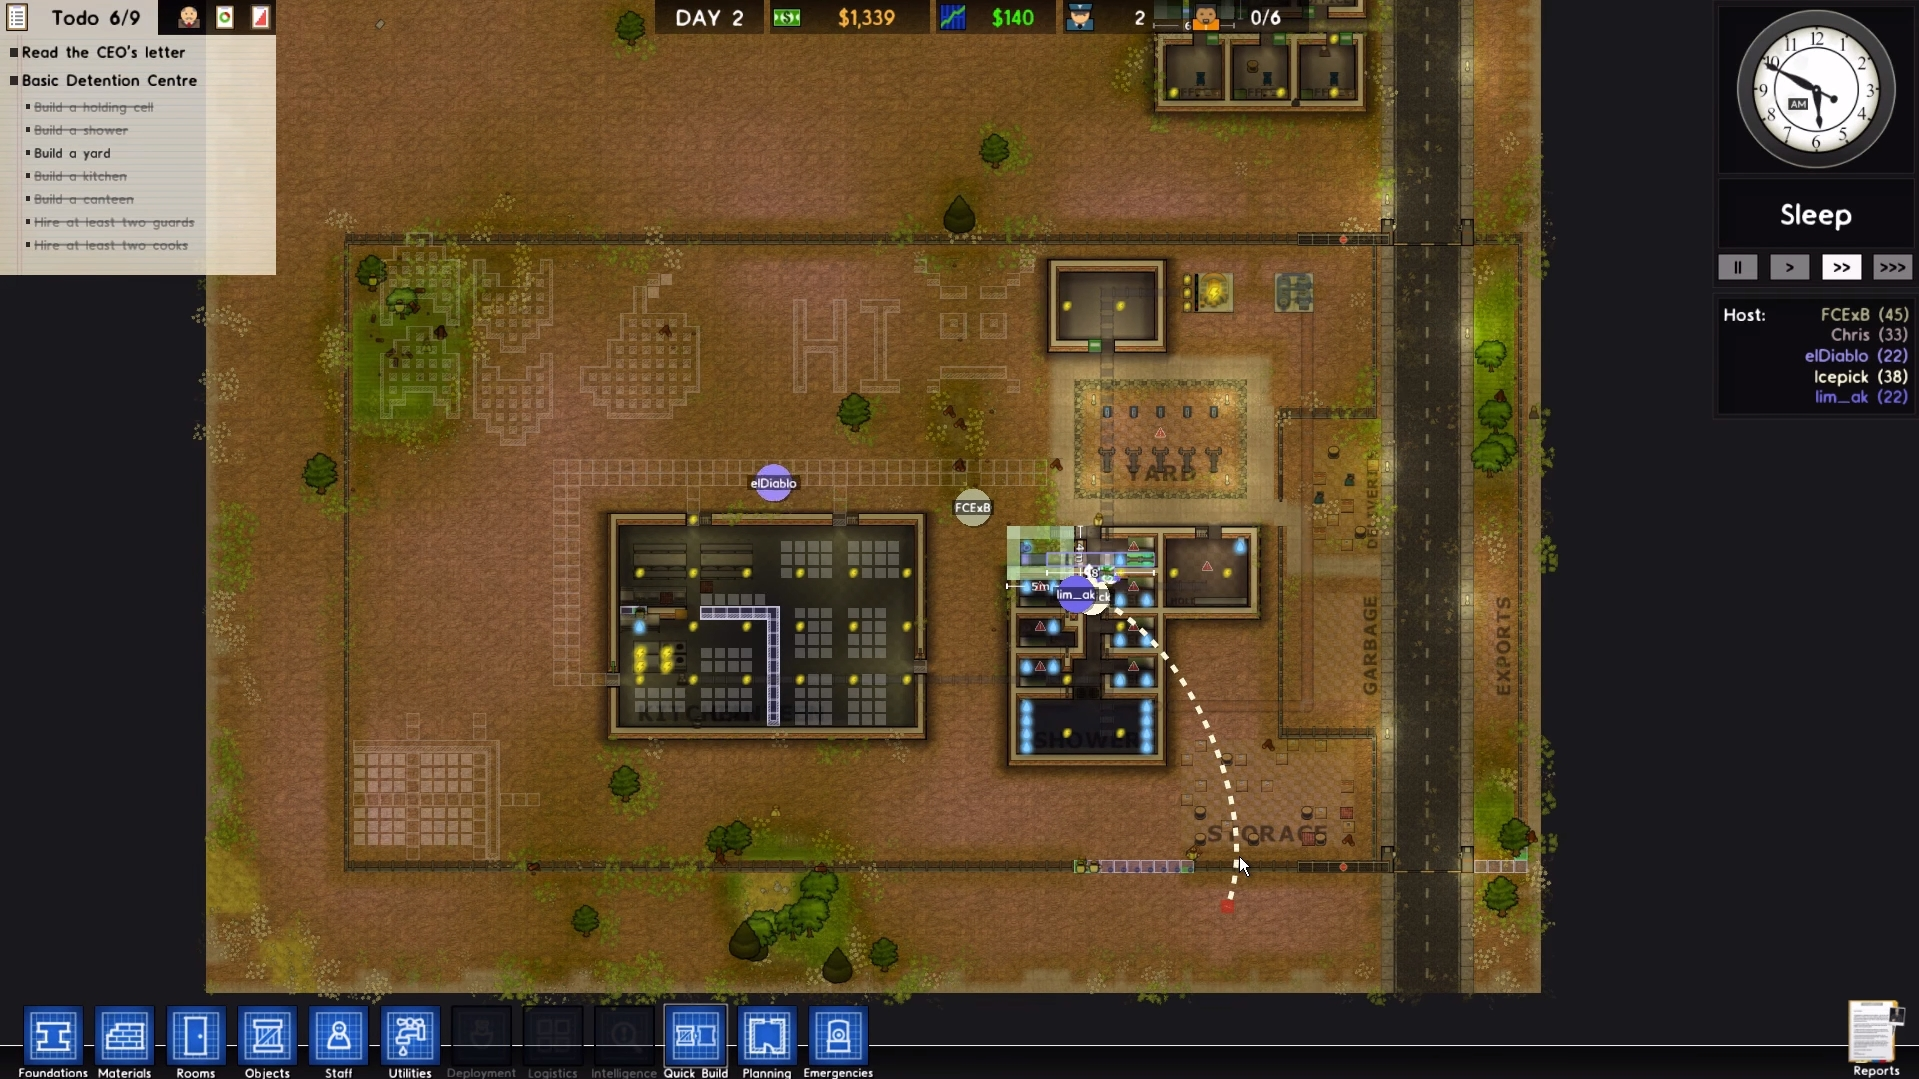 Prison Architect adds online multiplayer as an opt-in alpha feature